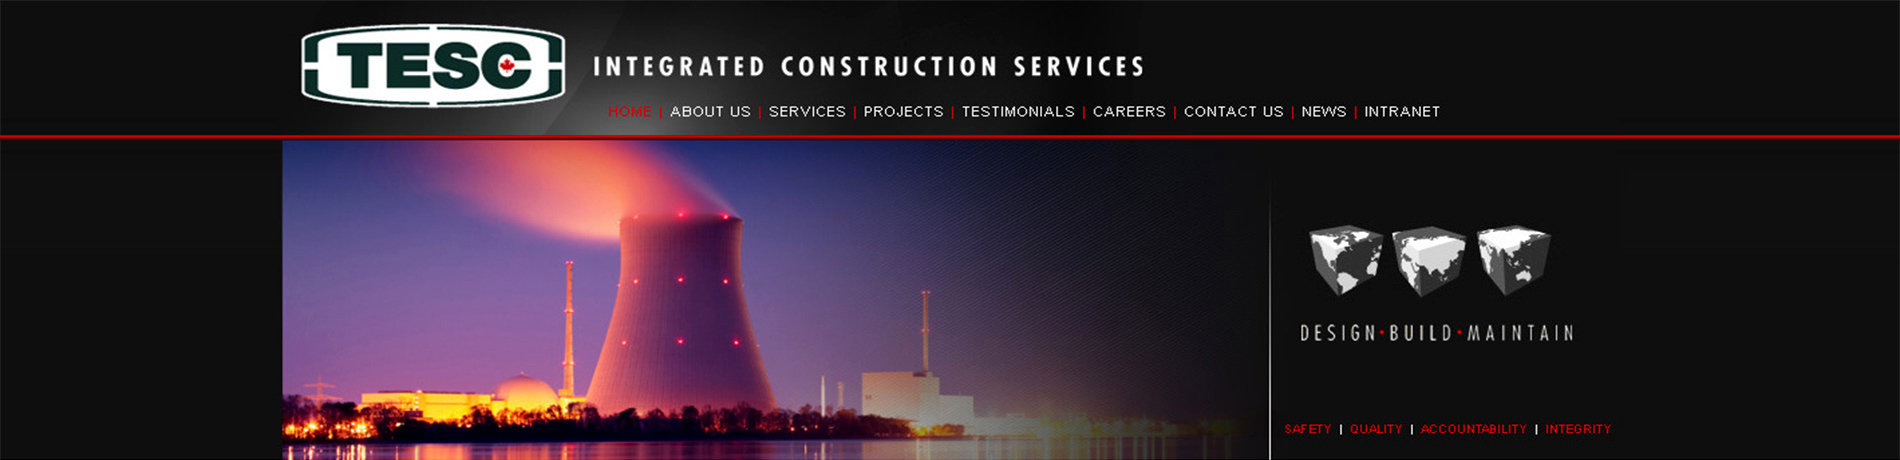 TESC Integrated Construction Services website showing power plant at night.